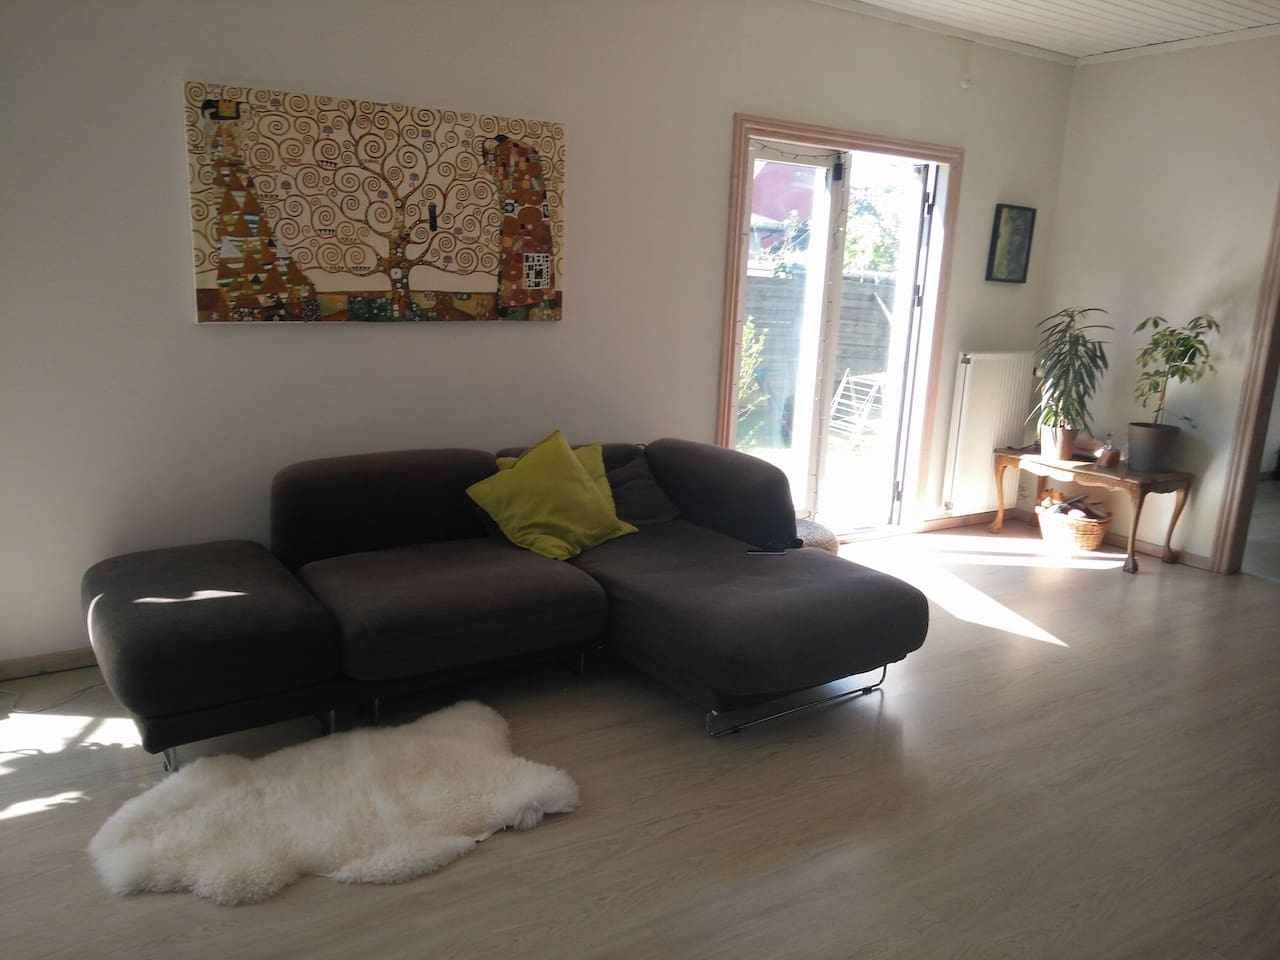 Our cosy and spacious living room: full of light even on a cloudy day:)